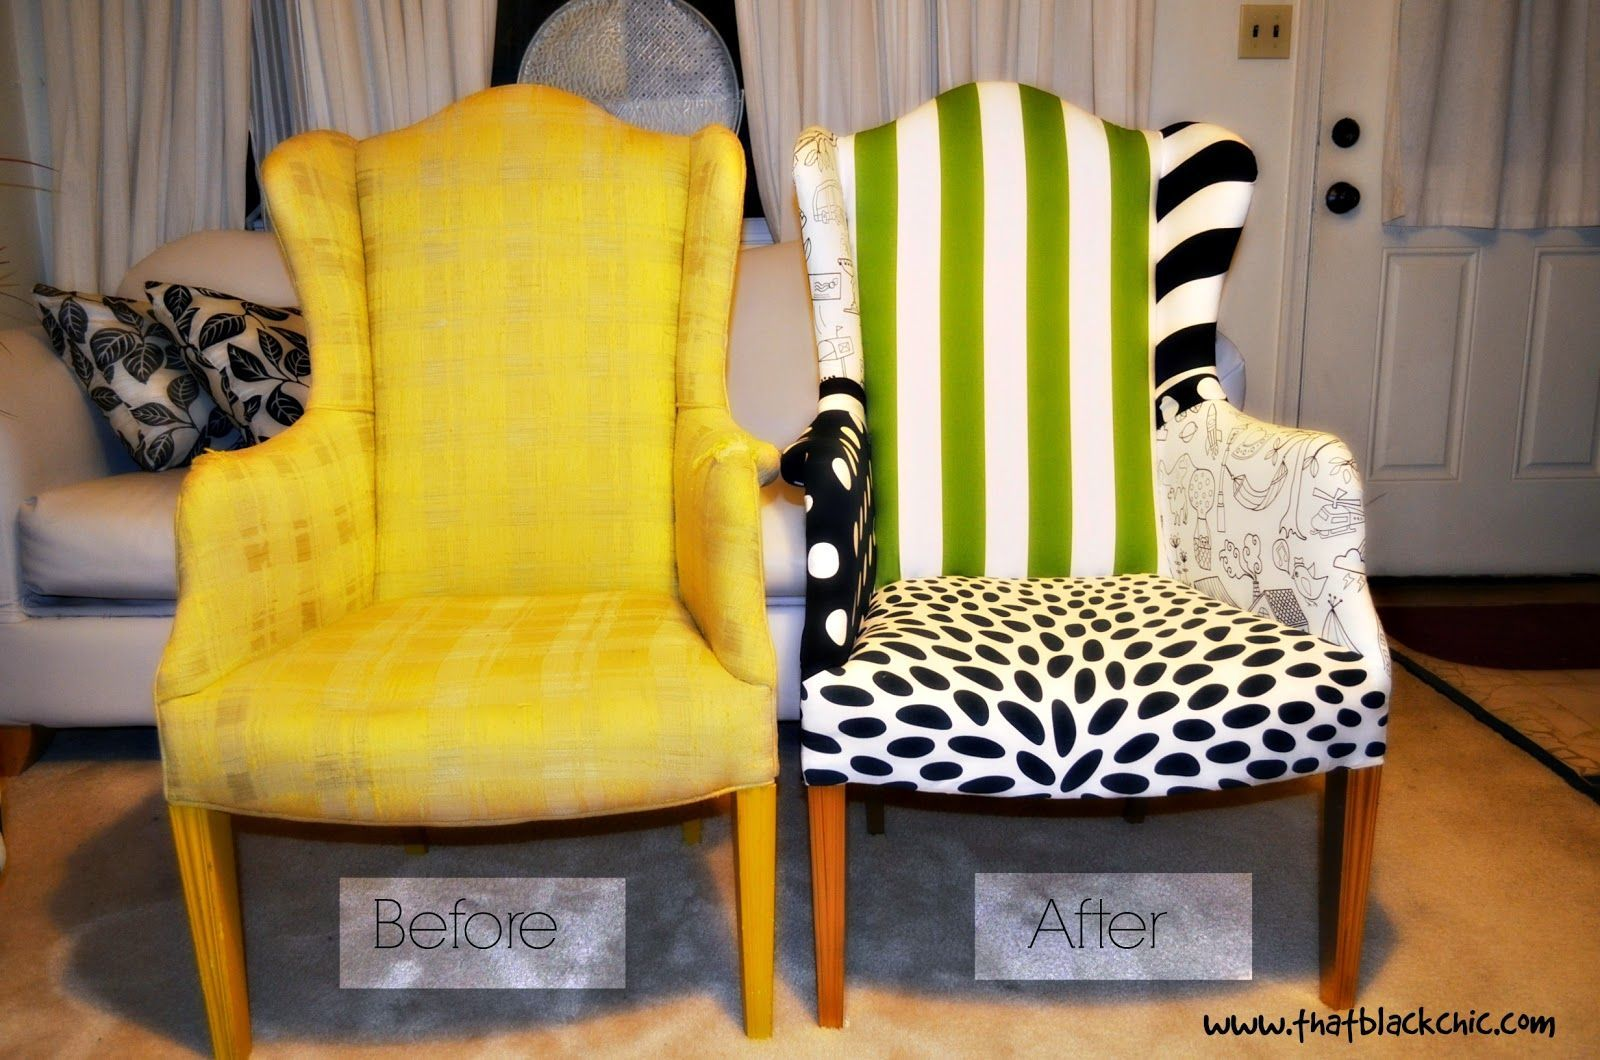 11 Alluring Upholstery Chair Link Ideas Diy Furniture Upholstery Couch Upholstery Sofa Upholstery